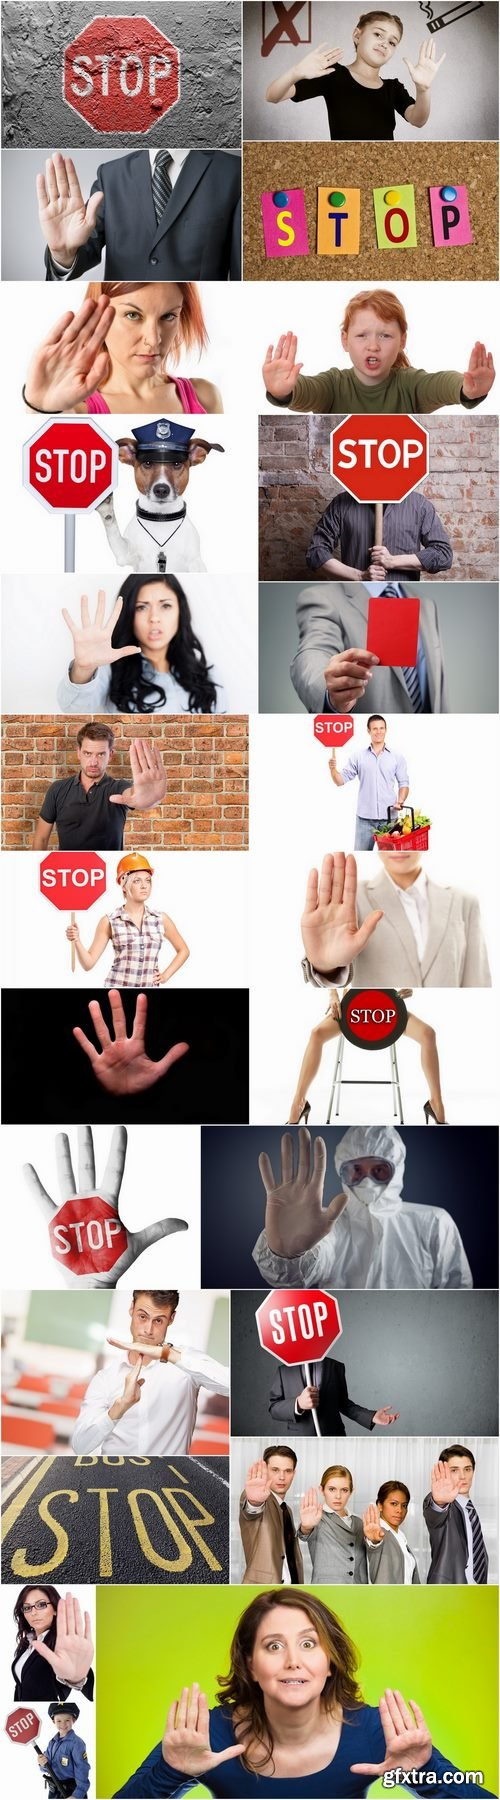 Conceptual images of Stop sign 25 HQ Jpeg